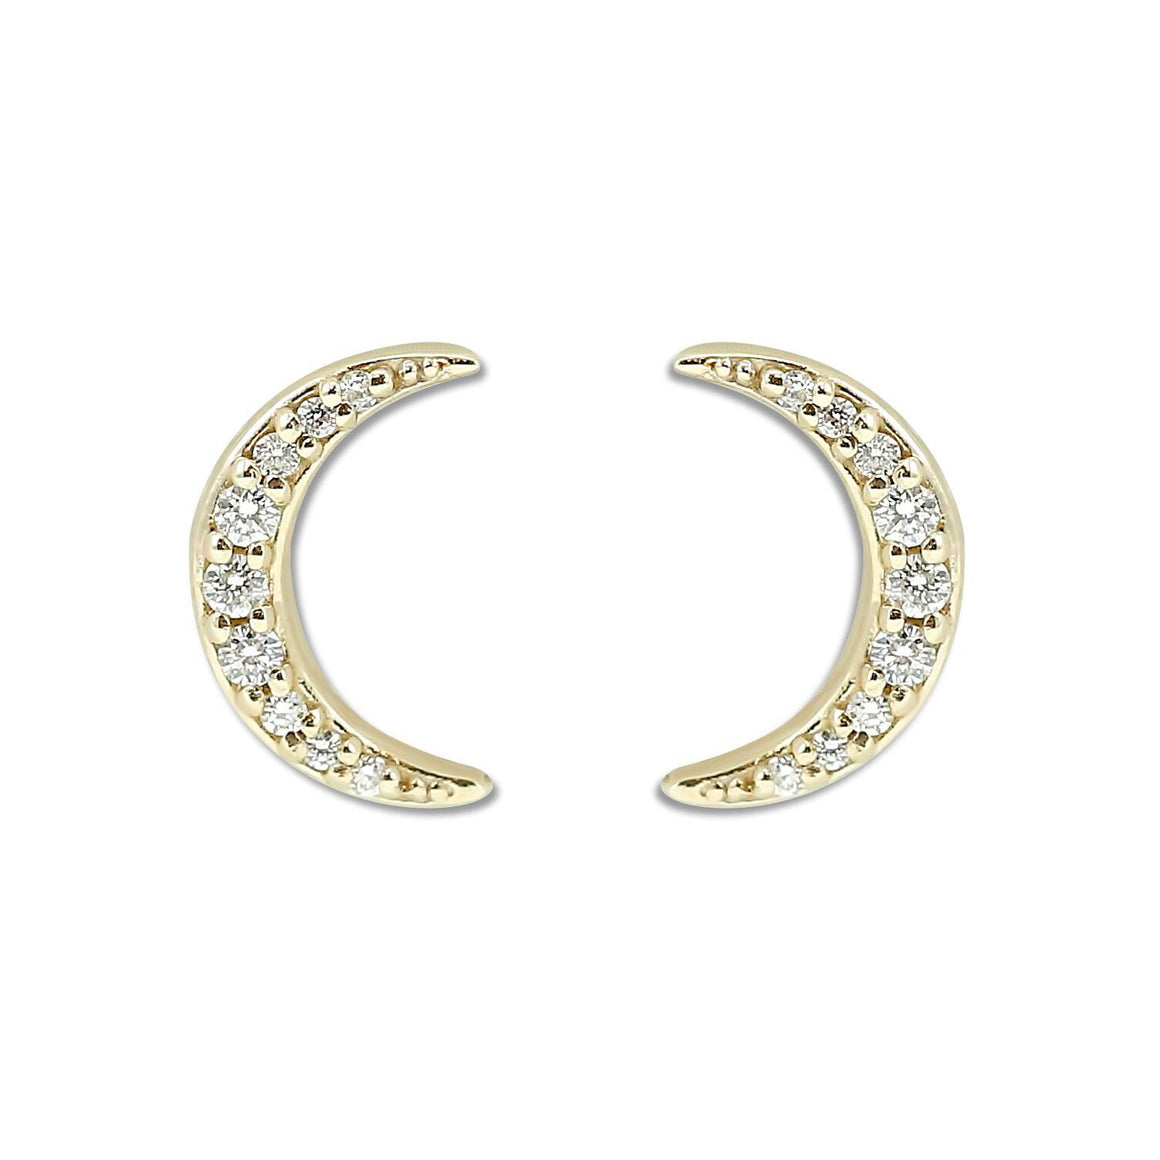 14k yellow gold half moon crescent diamond stud earrings ~0.10tcw diamonds